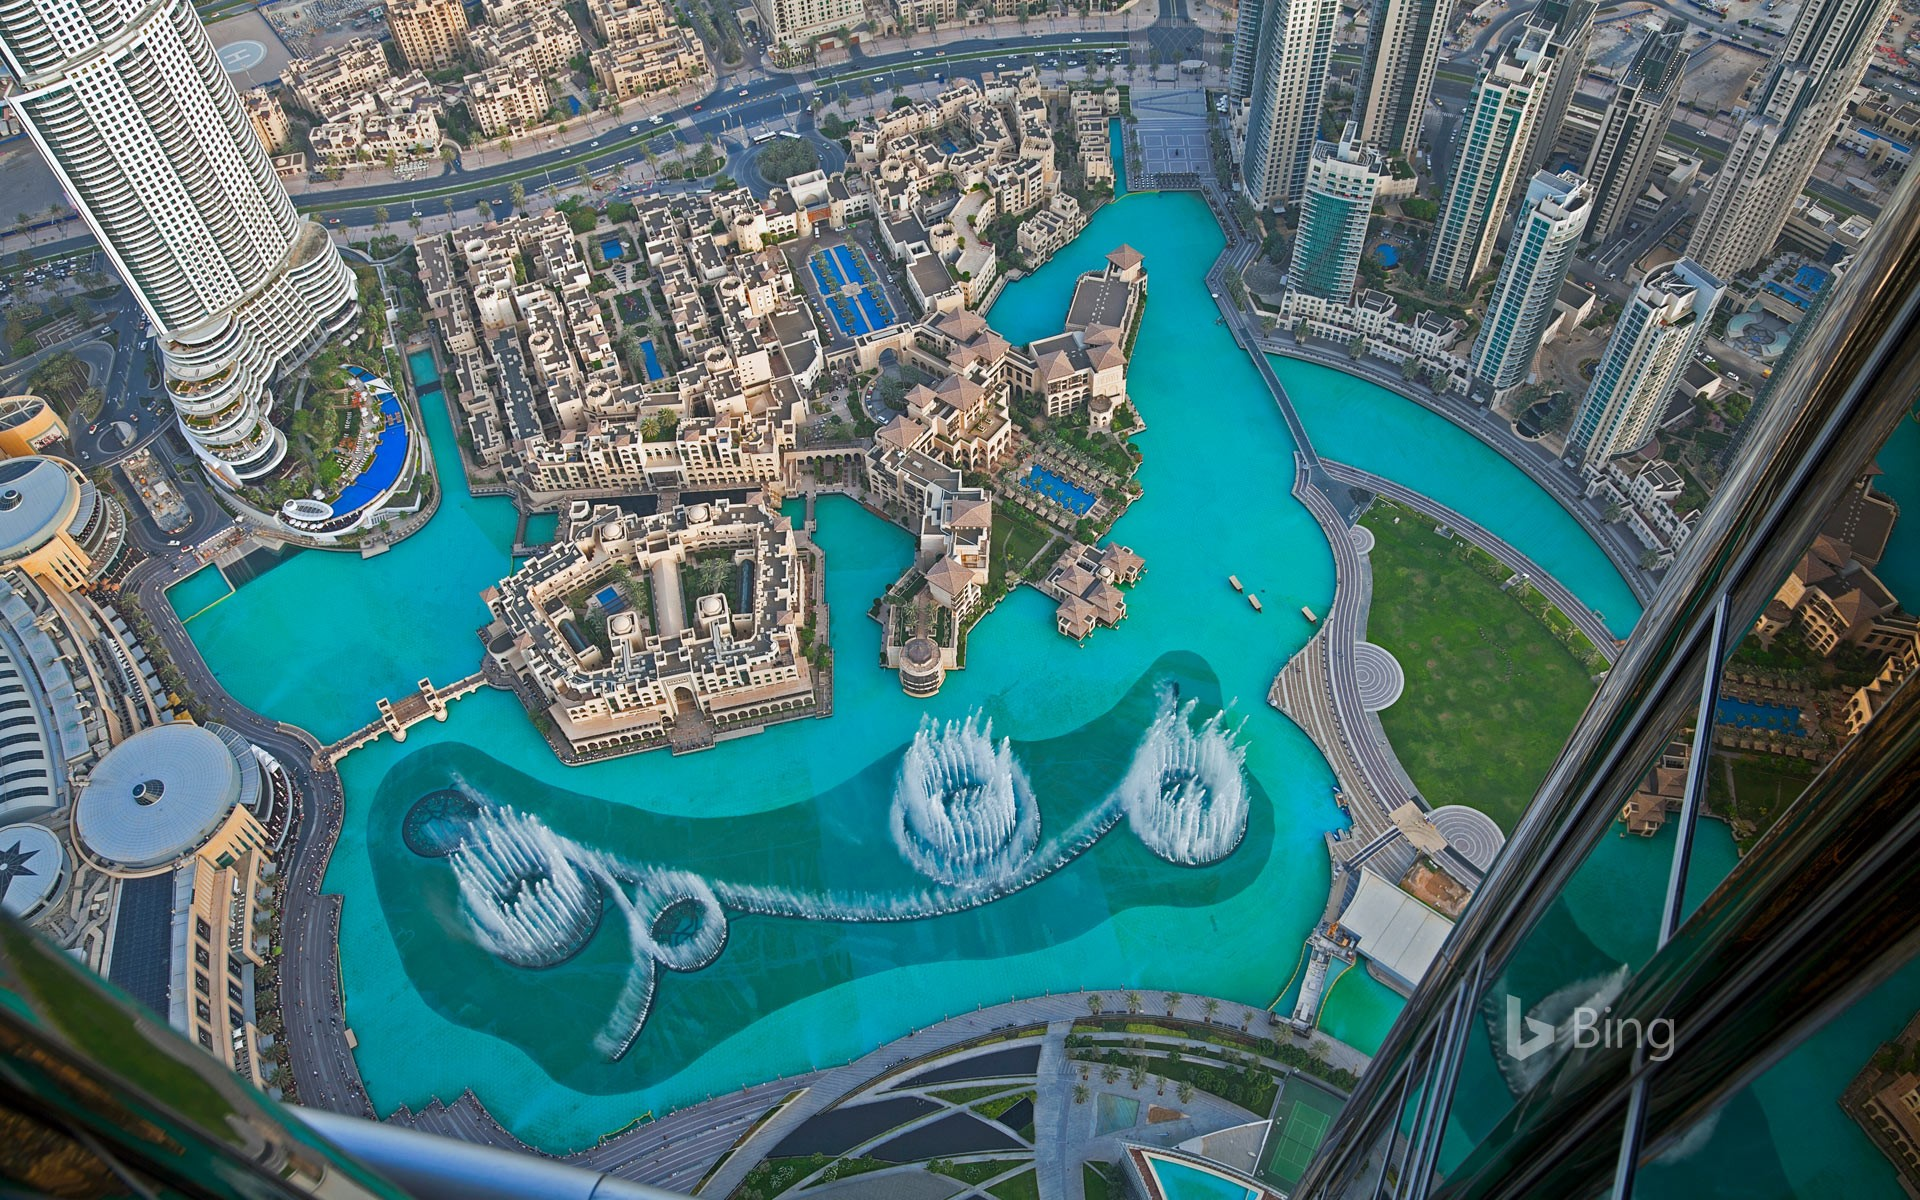 Dubai Fountain in the Burj Lake, taken from the Burj Khalifa, Dubai, UAE